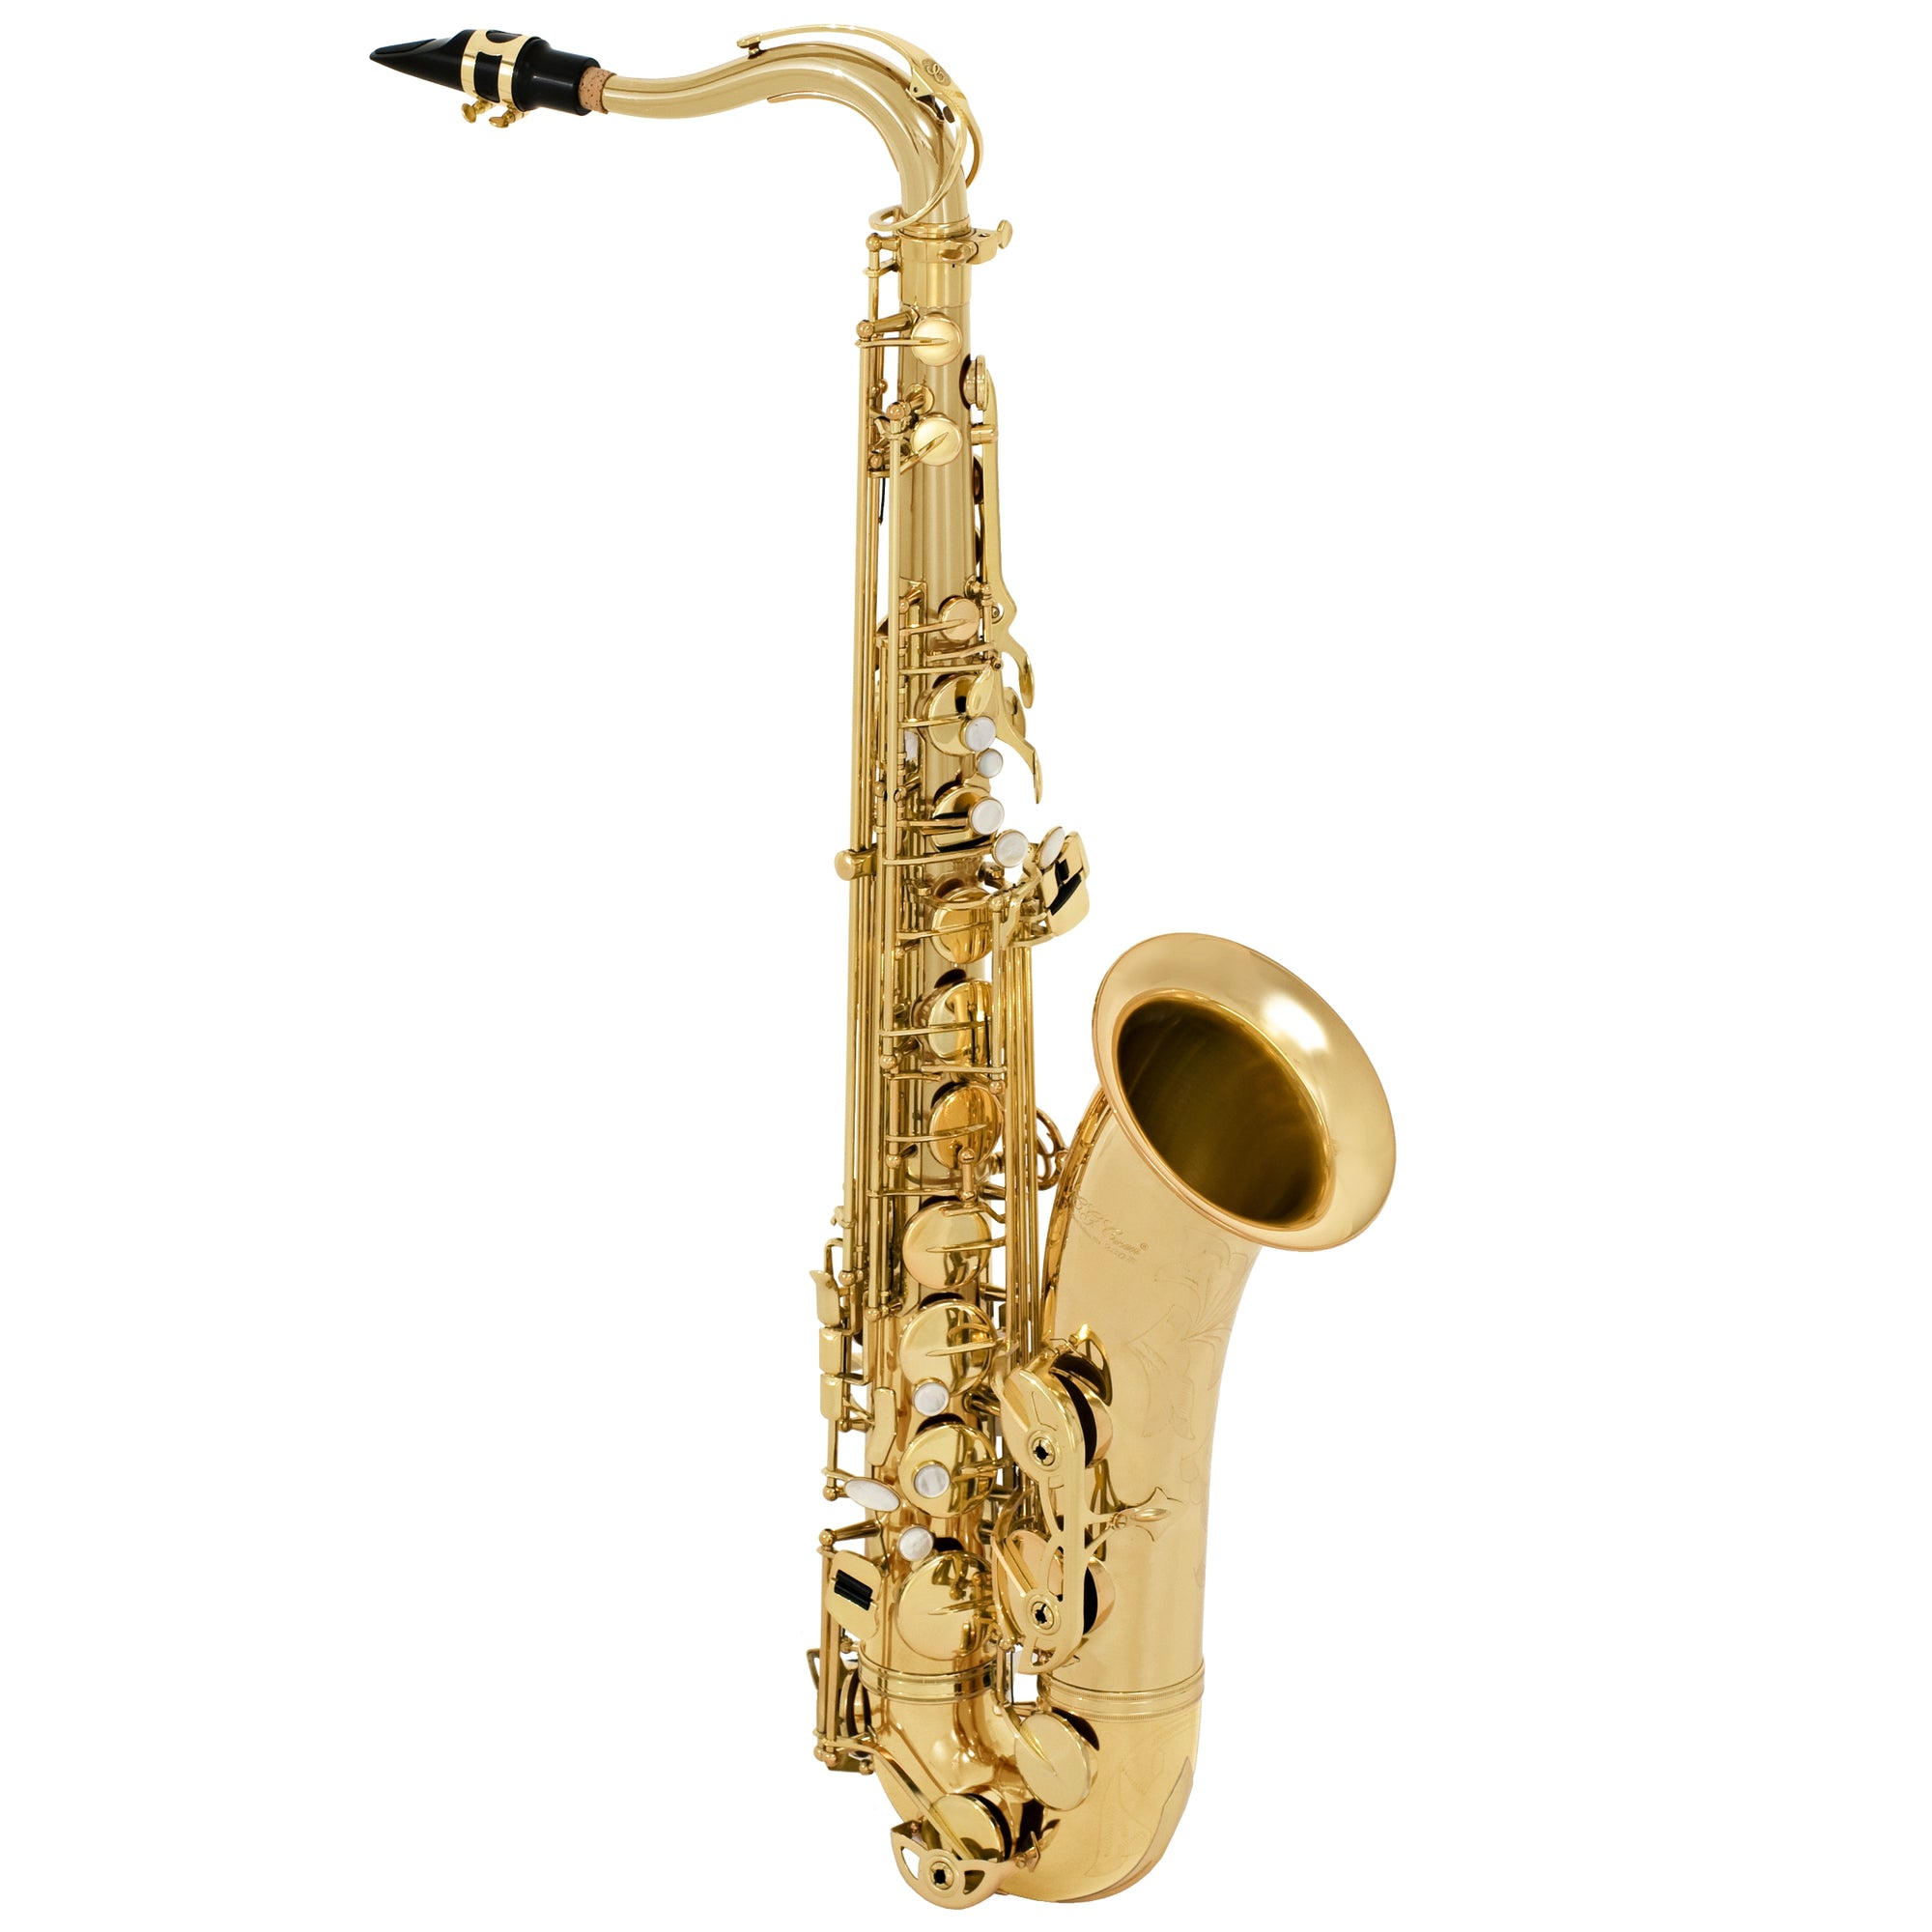 Selmer STS280R LaVoix II Tenor Saxophone Outfit - Standard